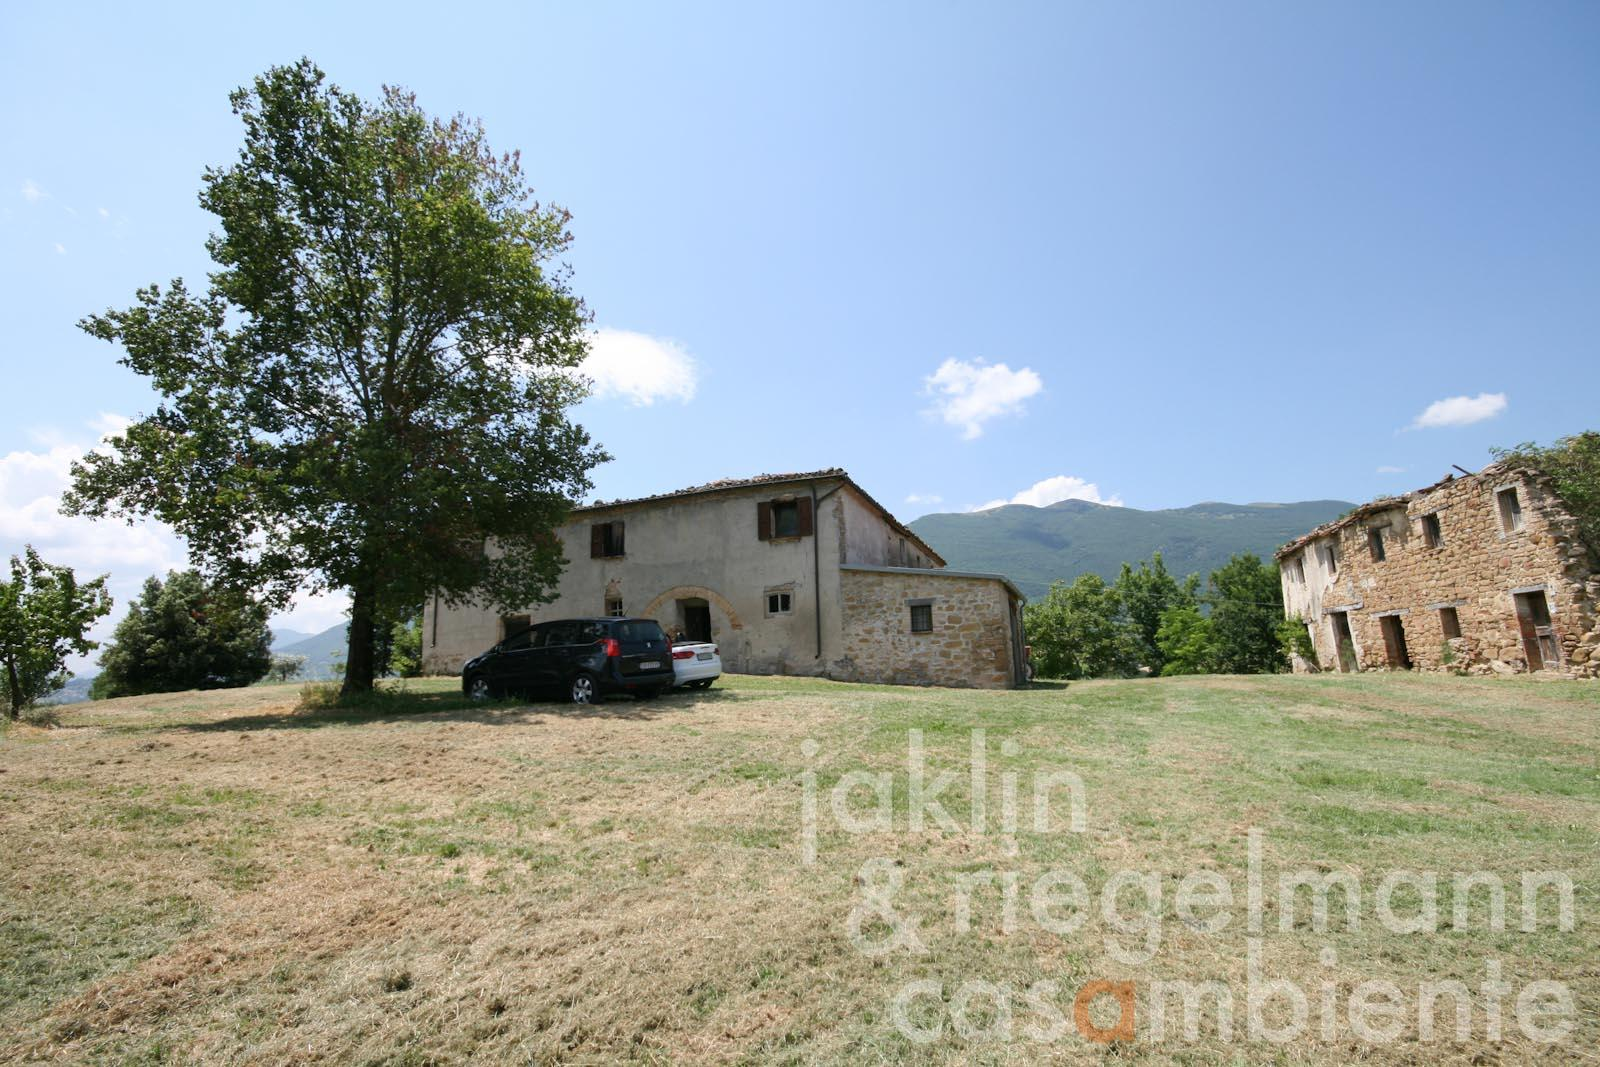 The country houses to restore for sale with 360° panoramic views close to Castelraimondo